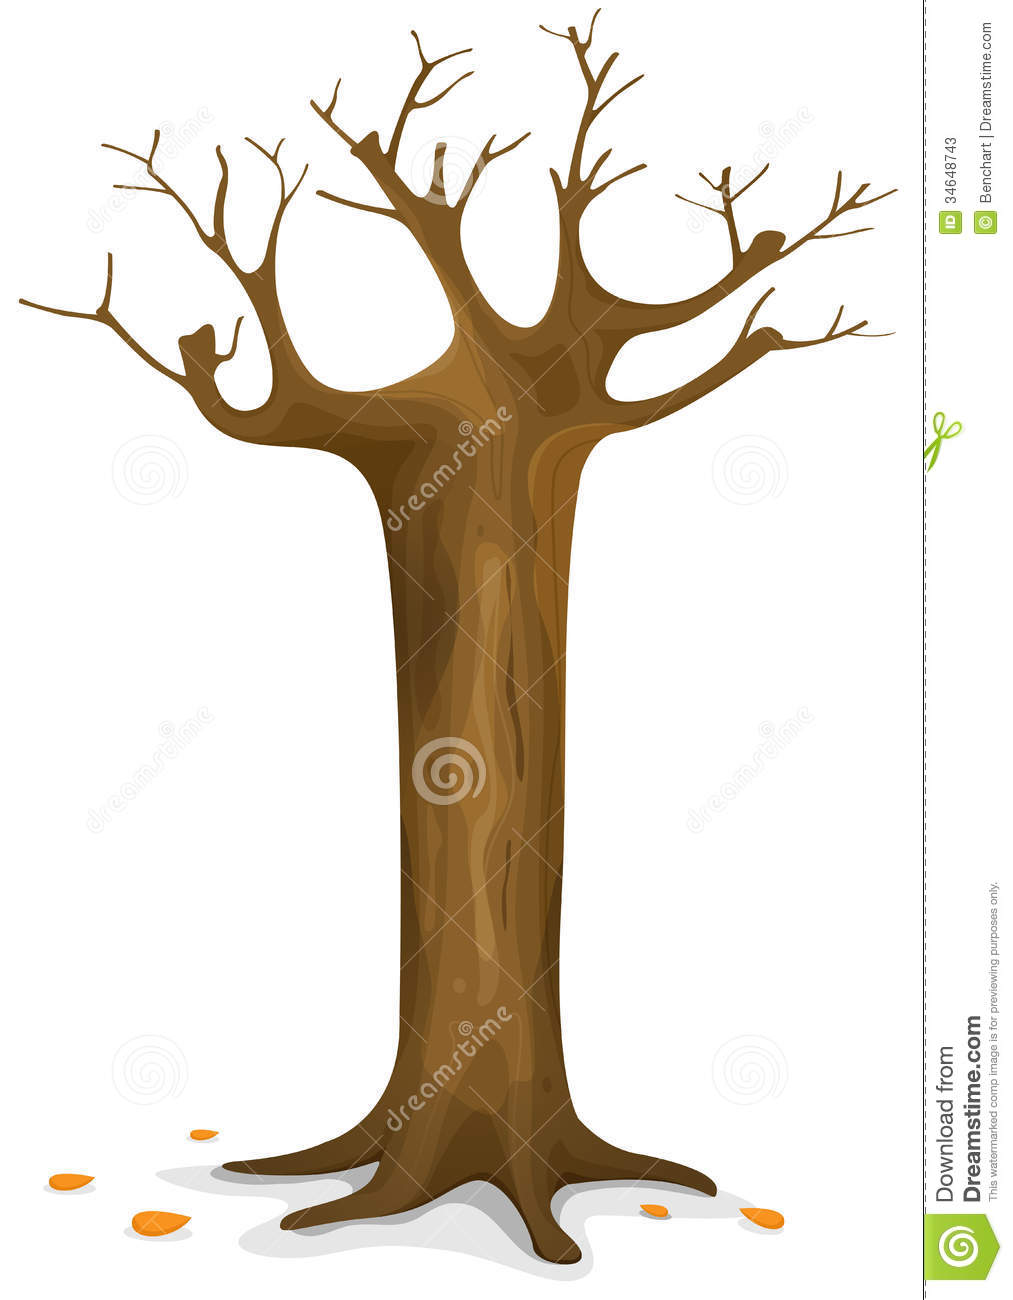 Autumn Tree Stock Photos - Image: 34648743 Cartoon Fall Tree With Branches